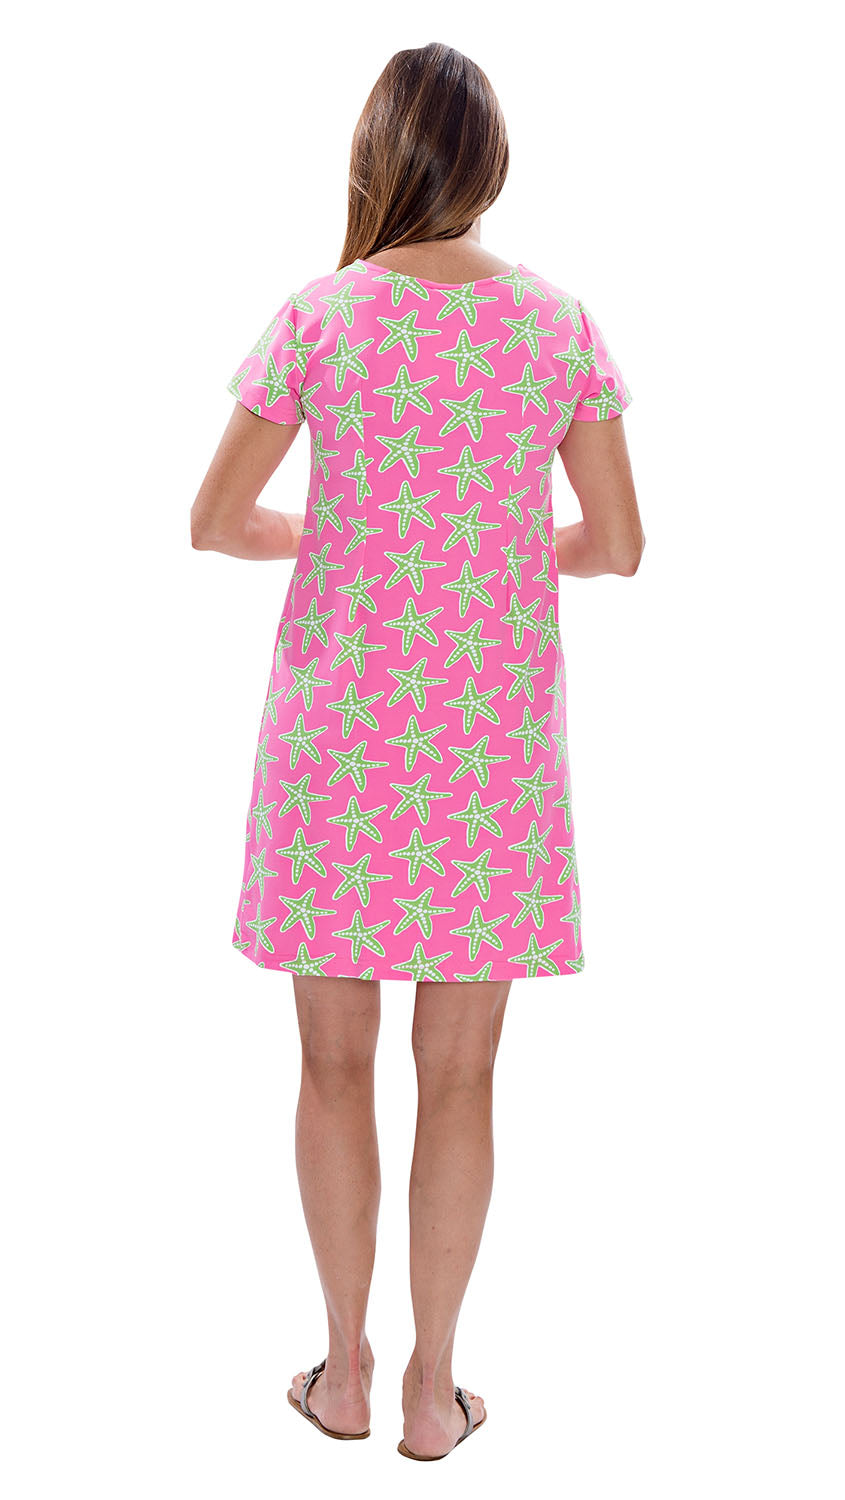 Marina Dress - Sea Stars Pink/Green